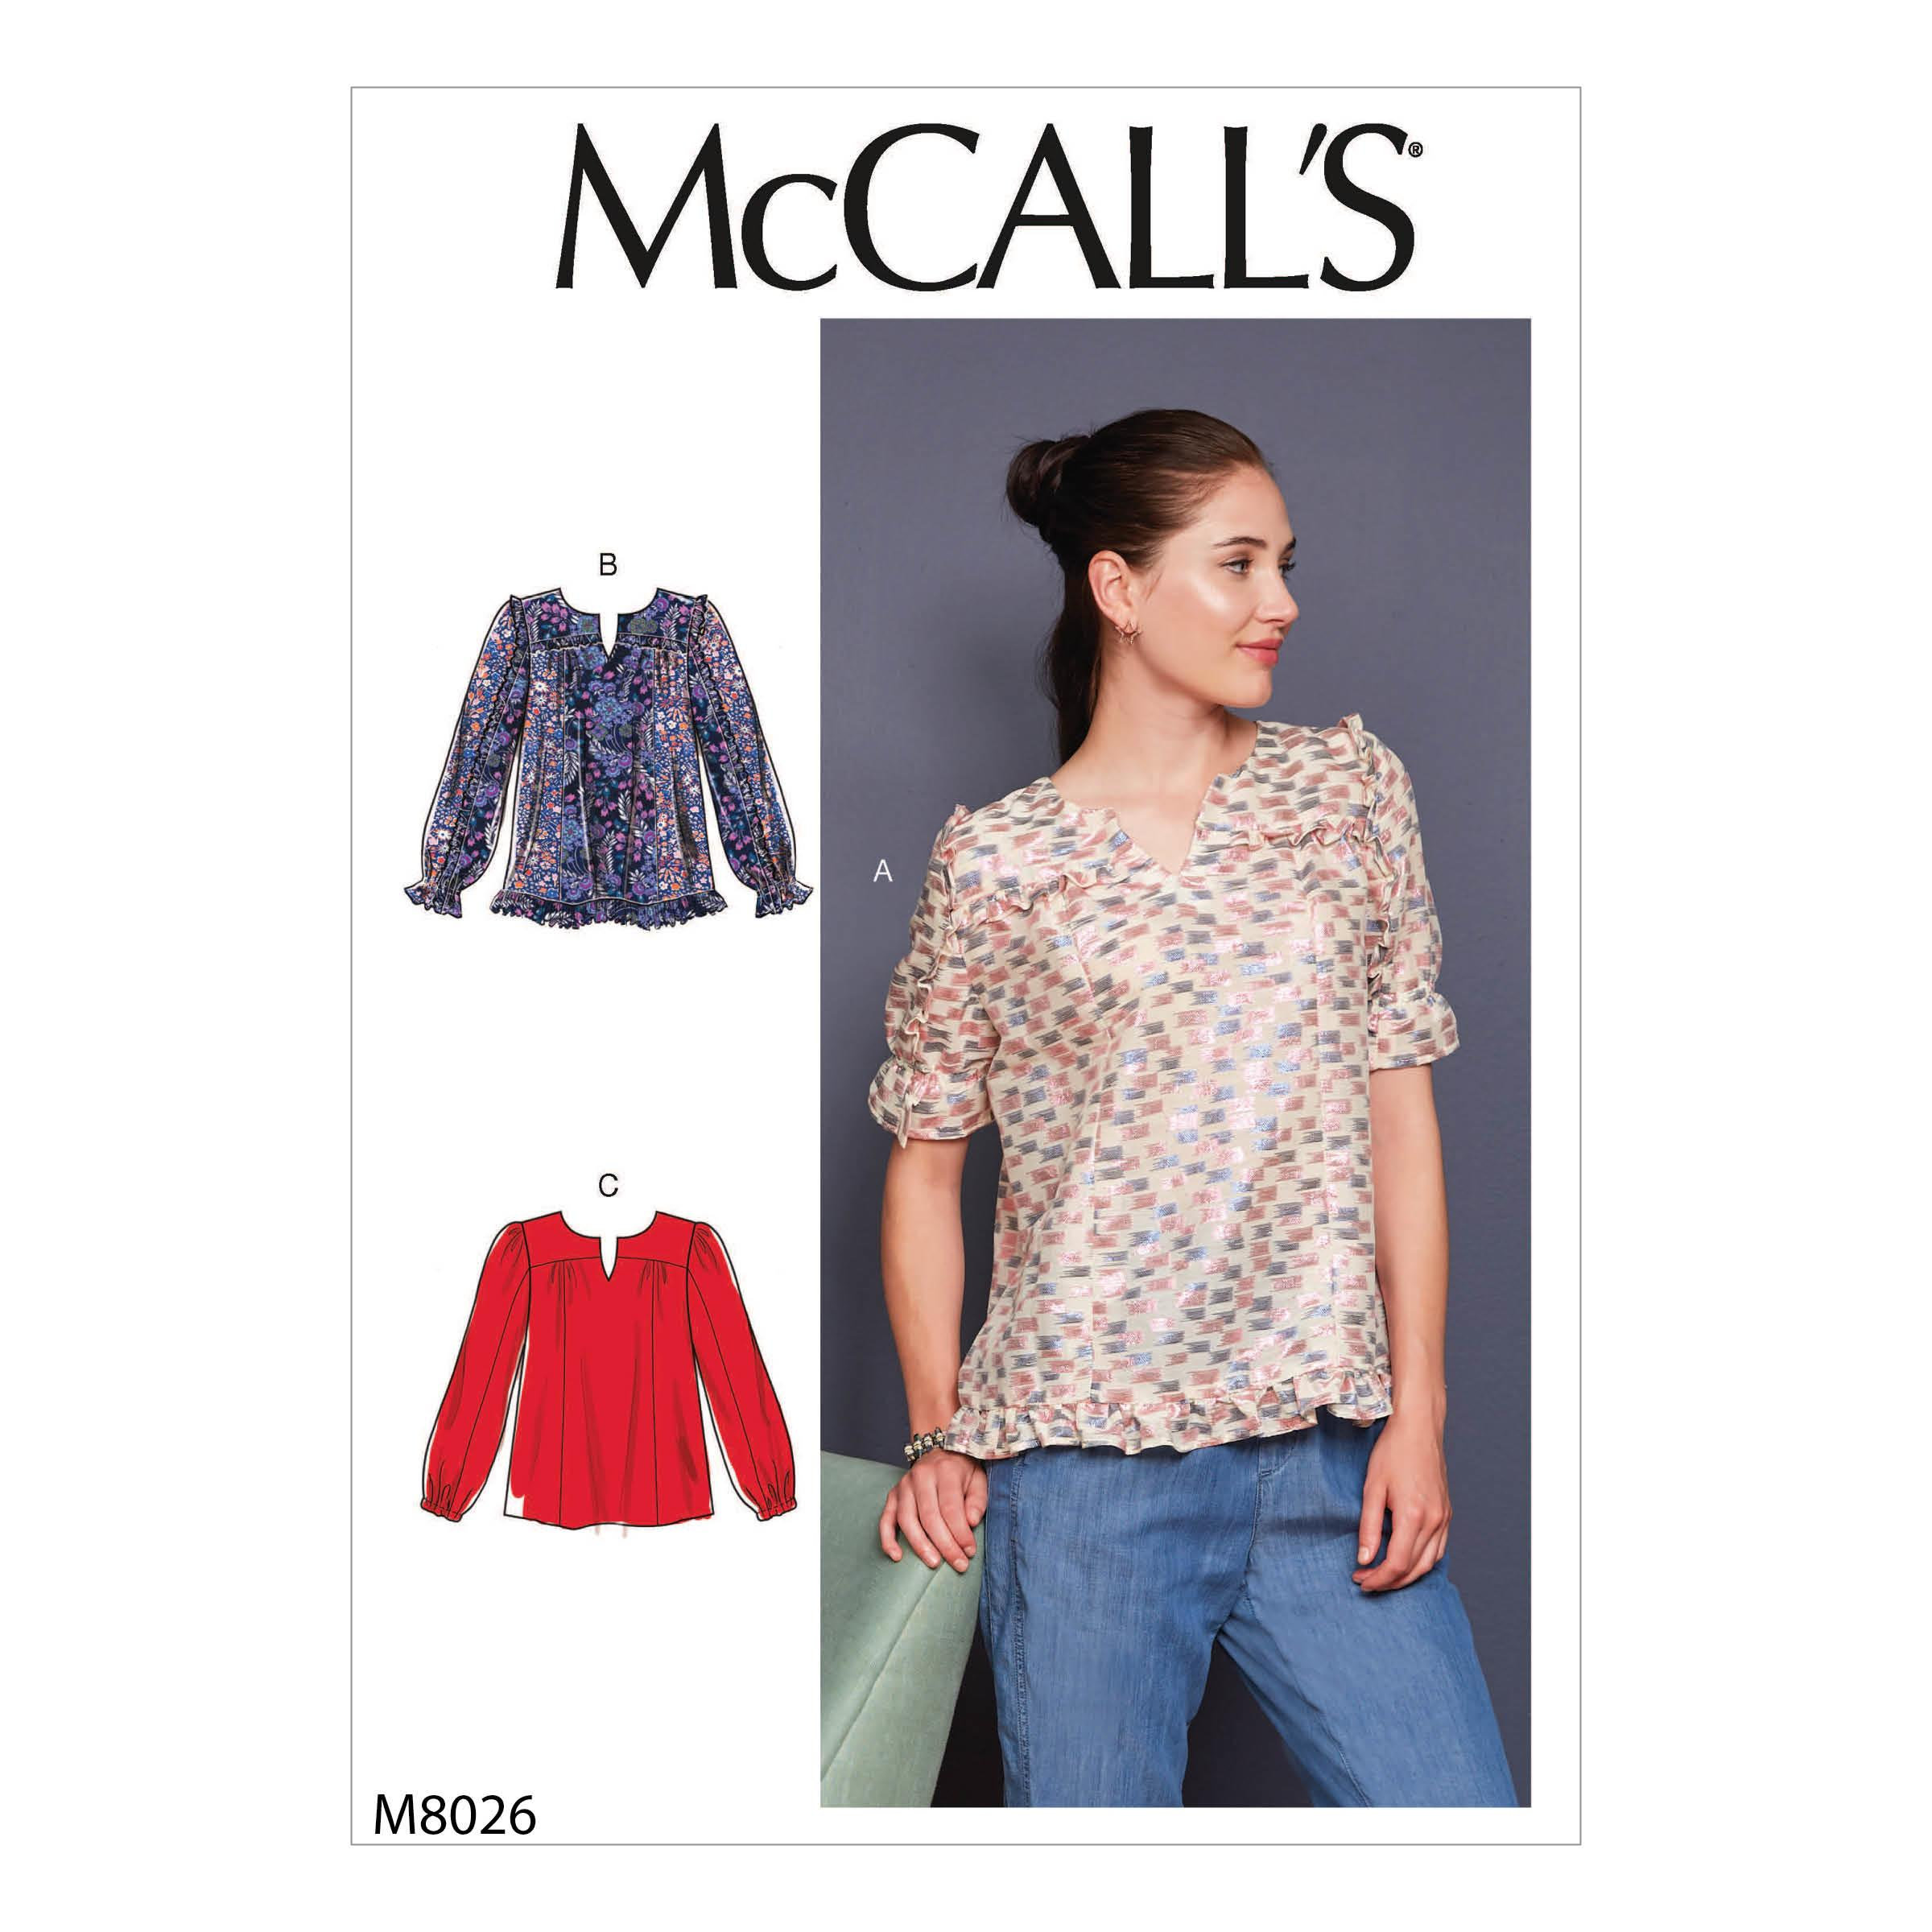 McCalls M8026 Misses Tops